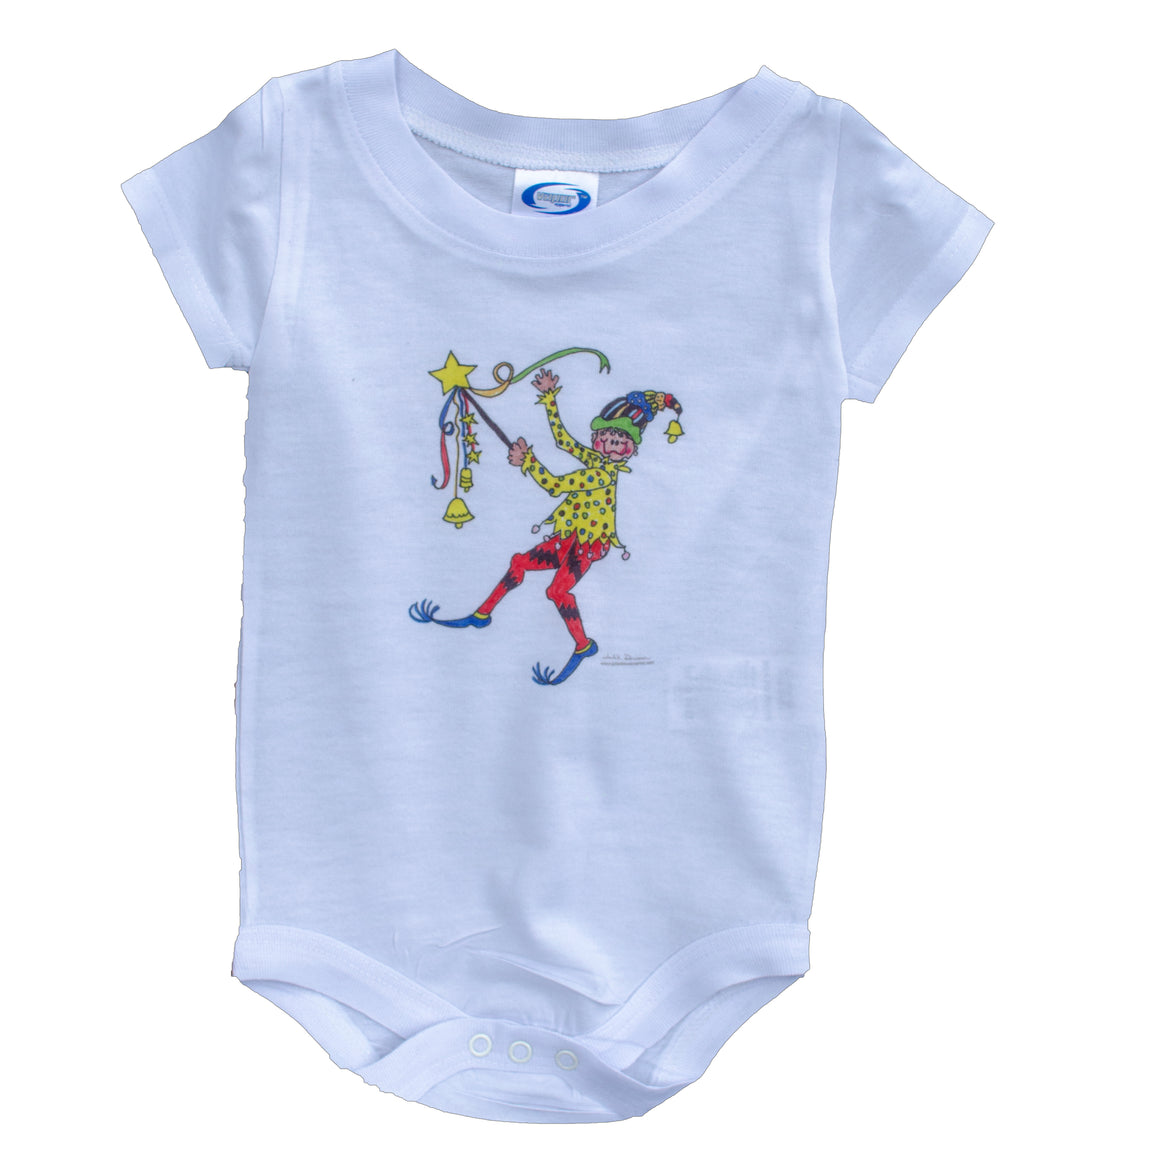 Sillybilly Boy Infant Bodysuit